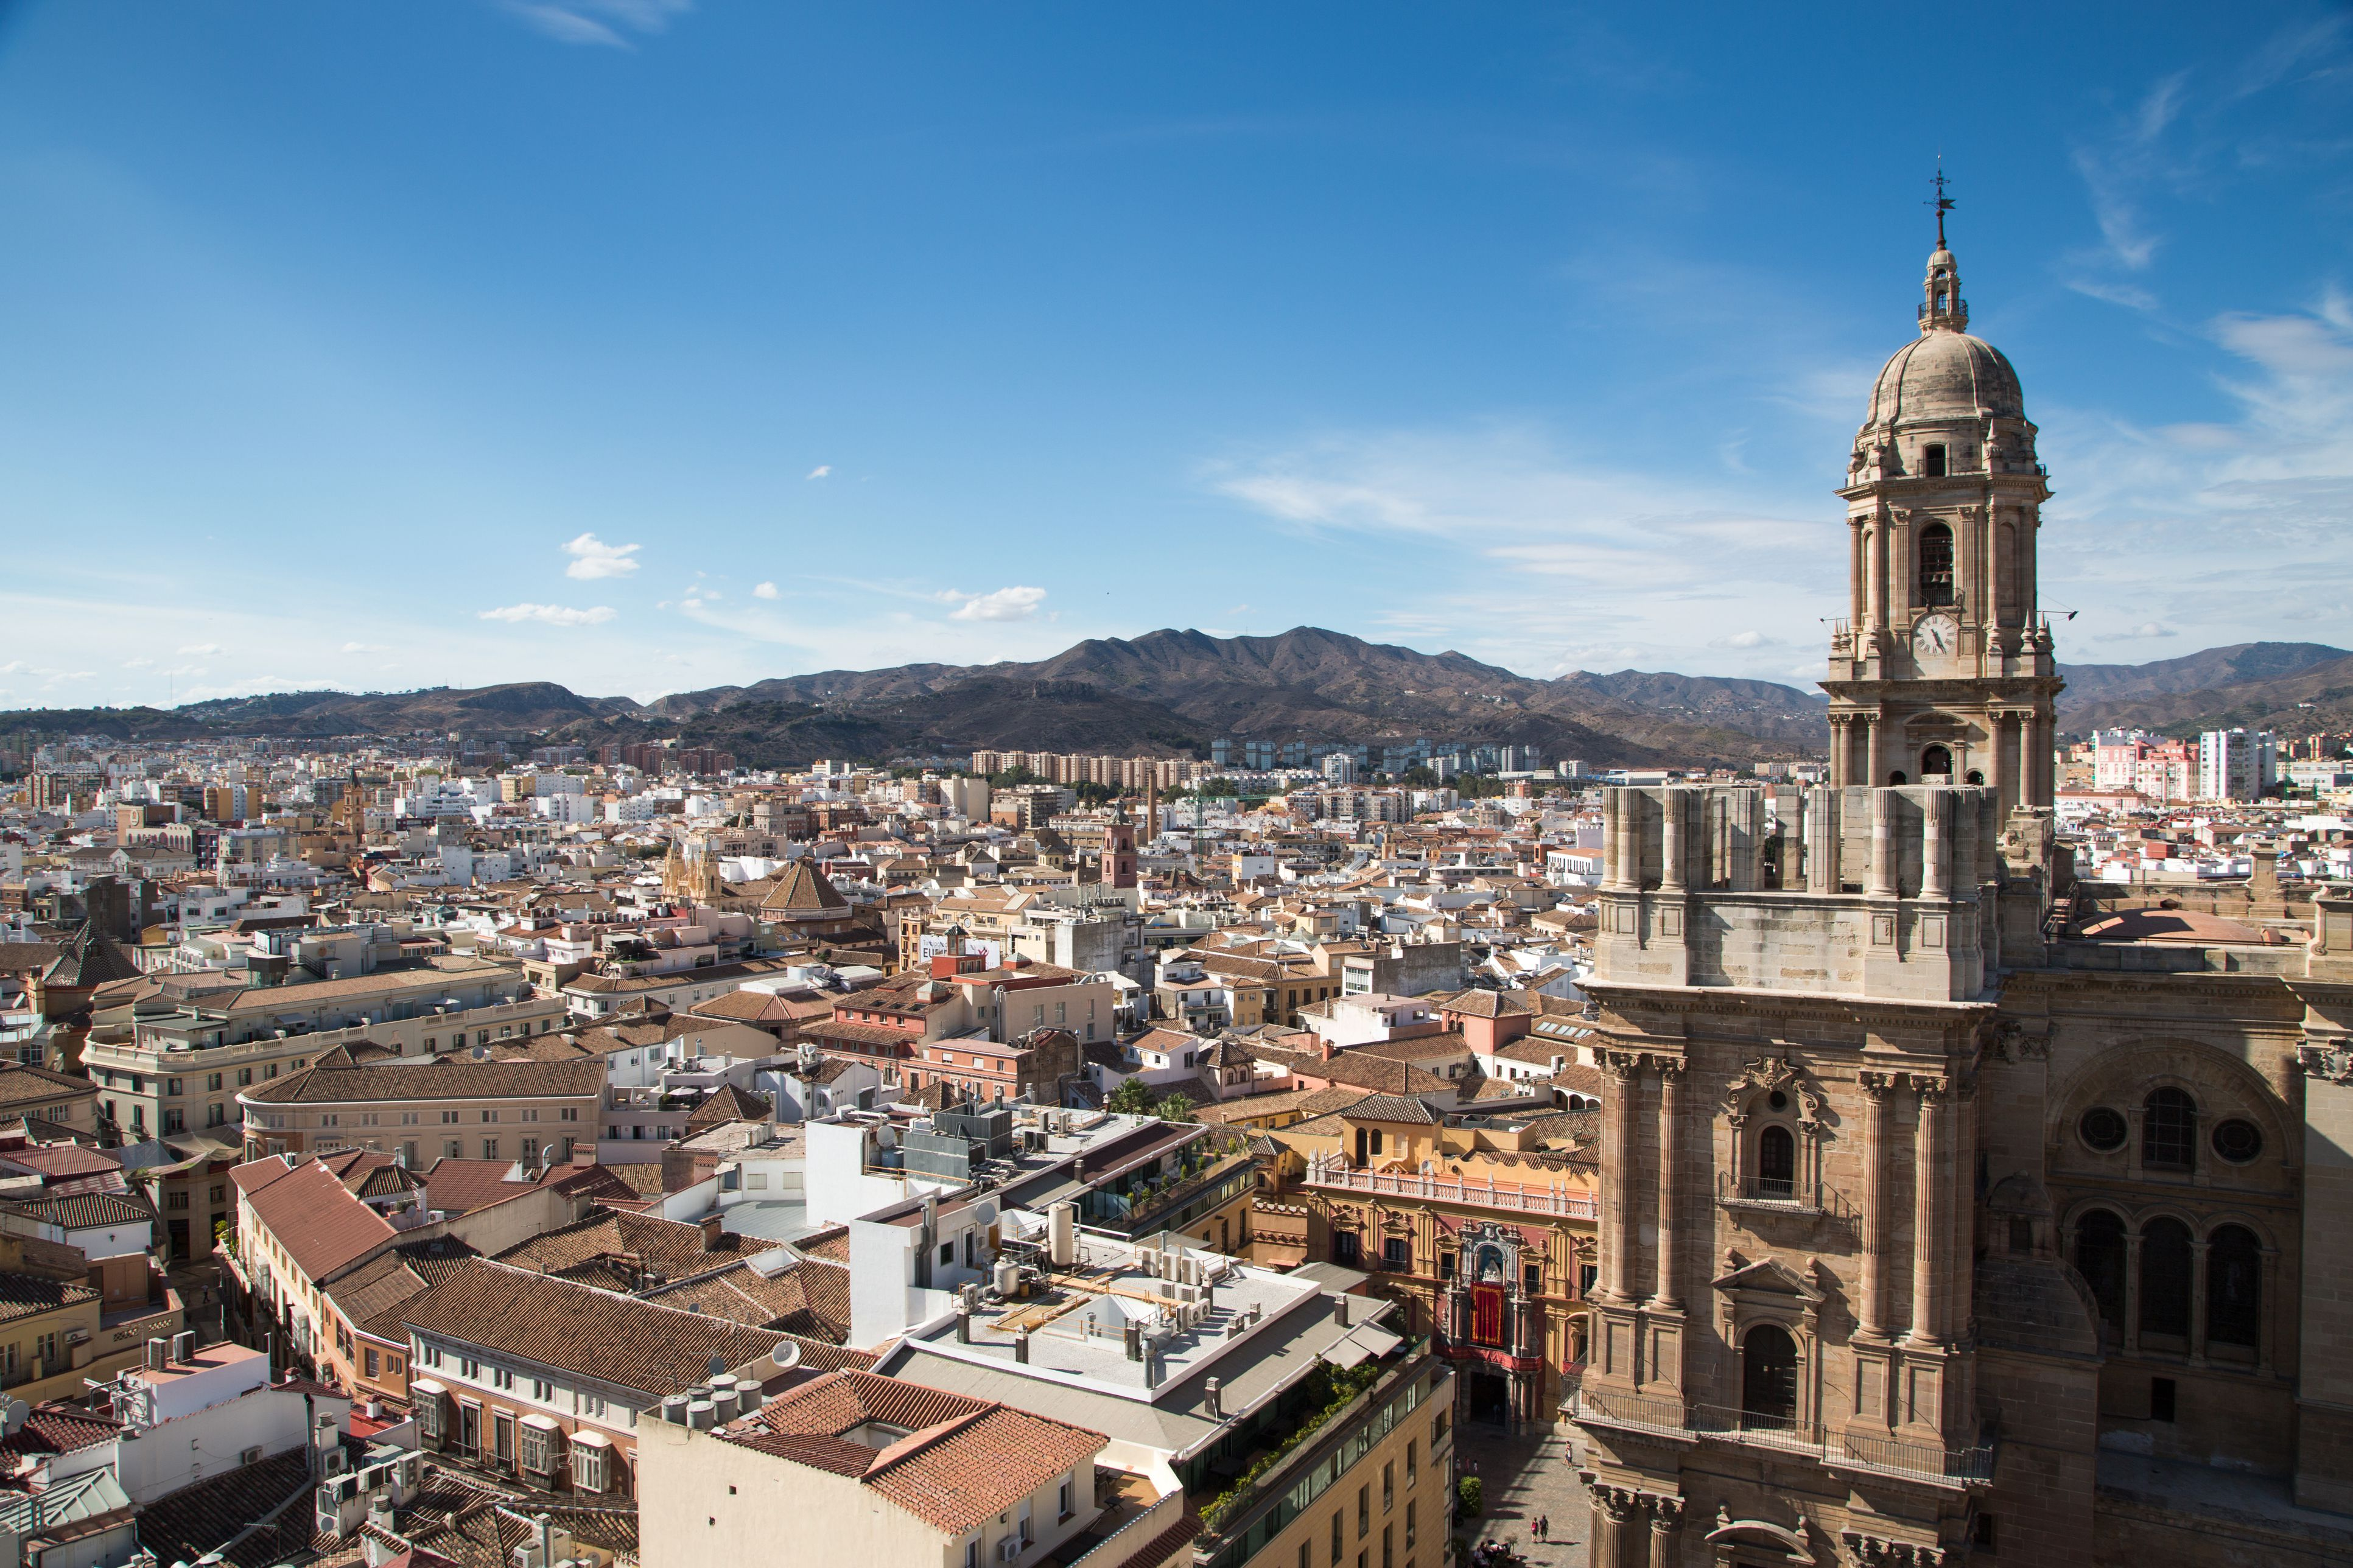 Overhead of Malaga from rooftop